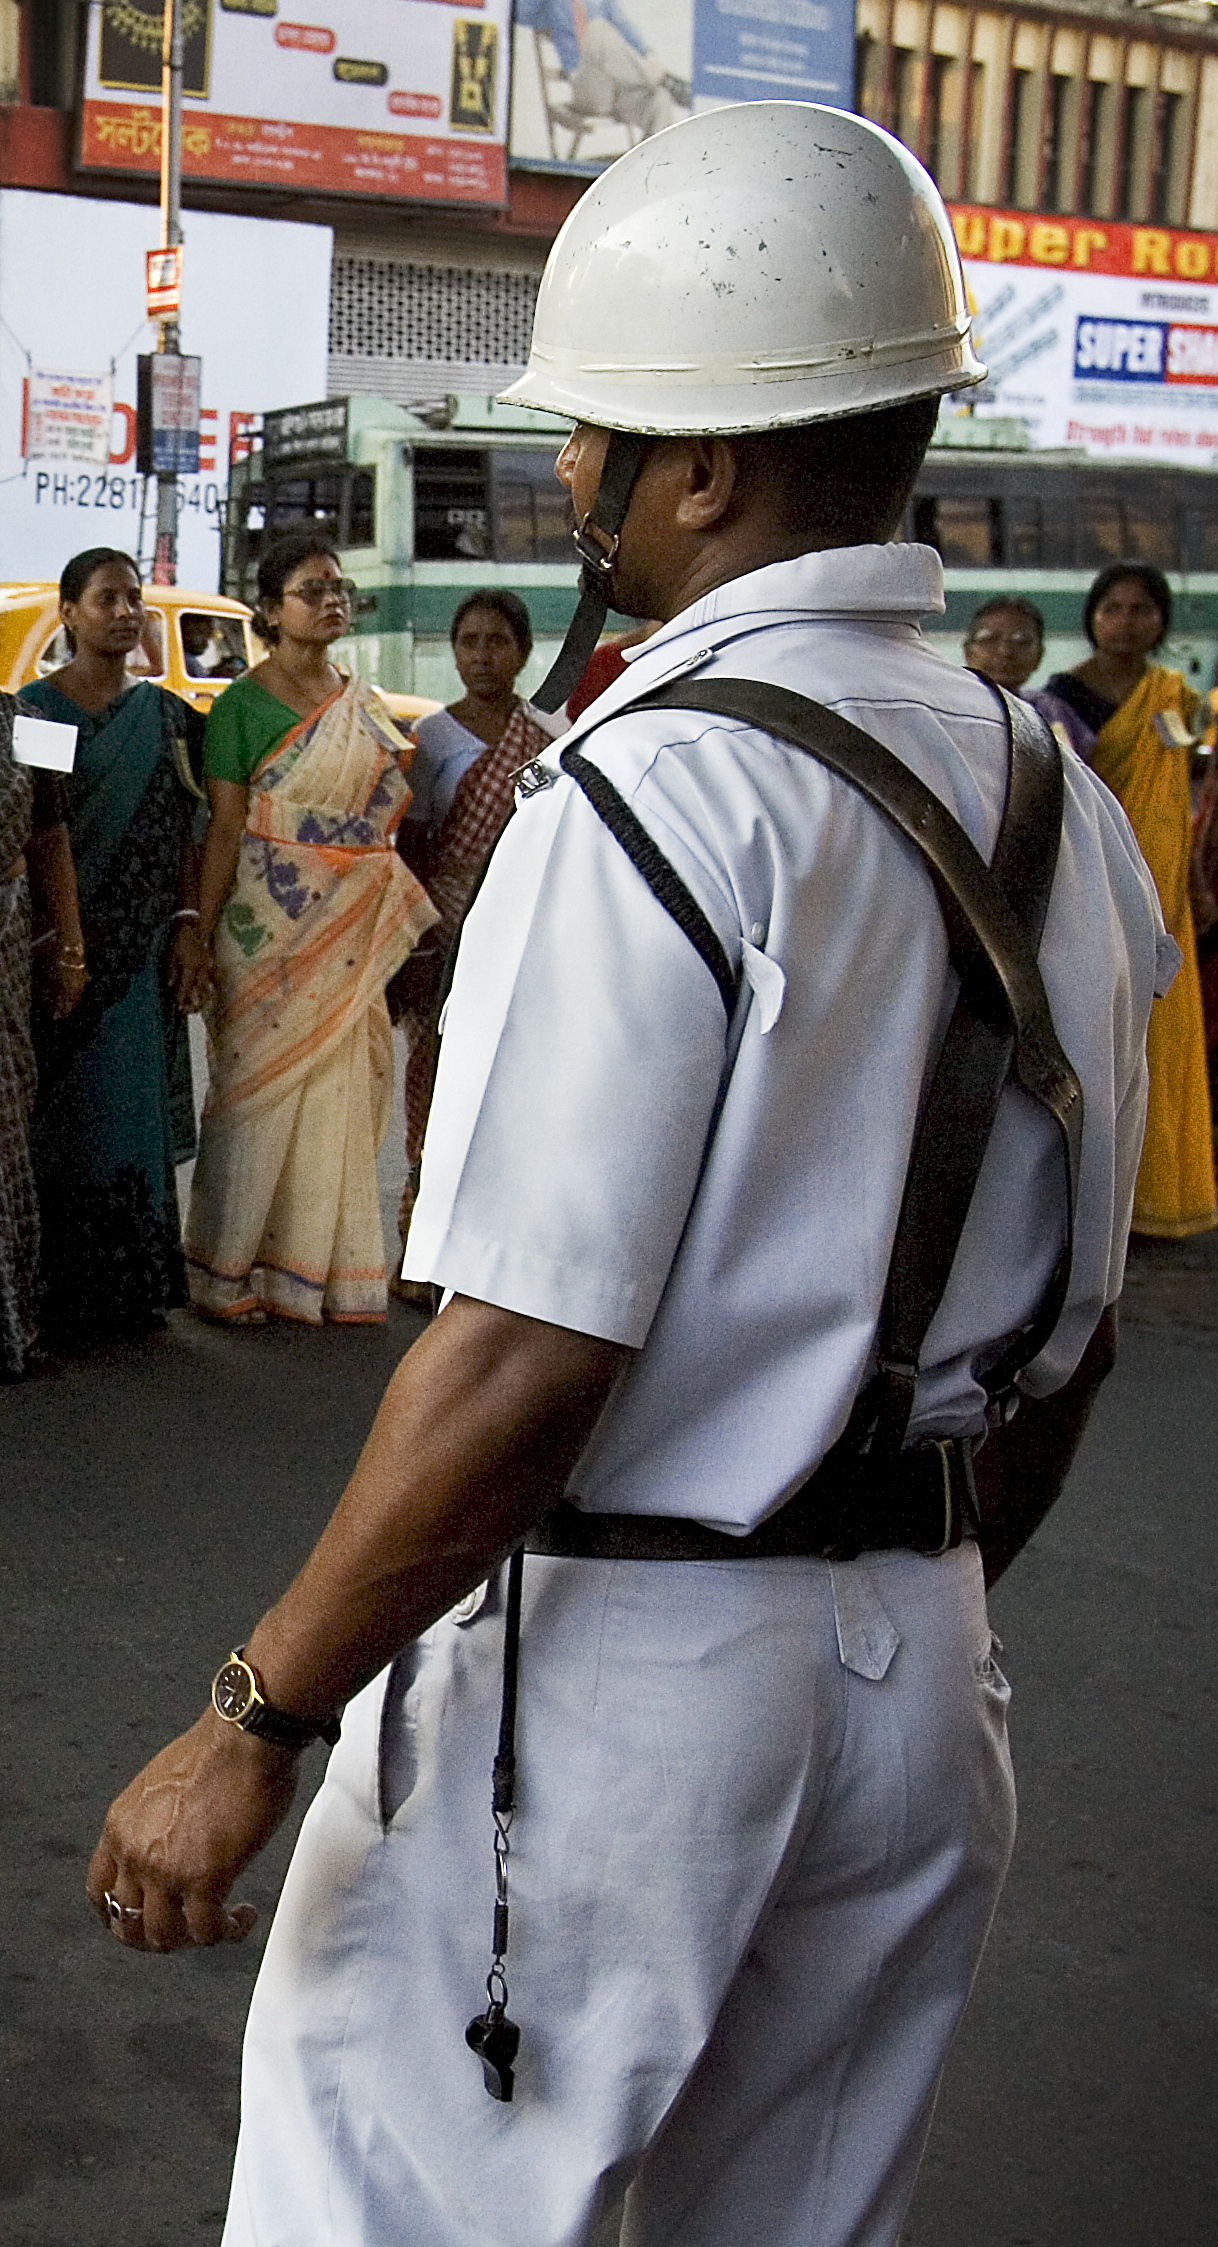 """Policeman facing women in a protest march, Calcutta Kolkata India"" Photo by: Jorge Royan"